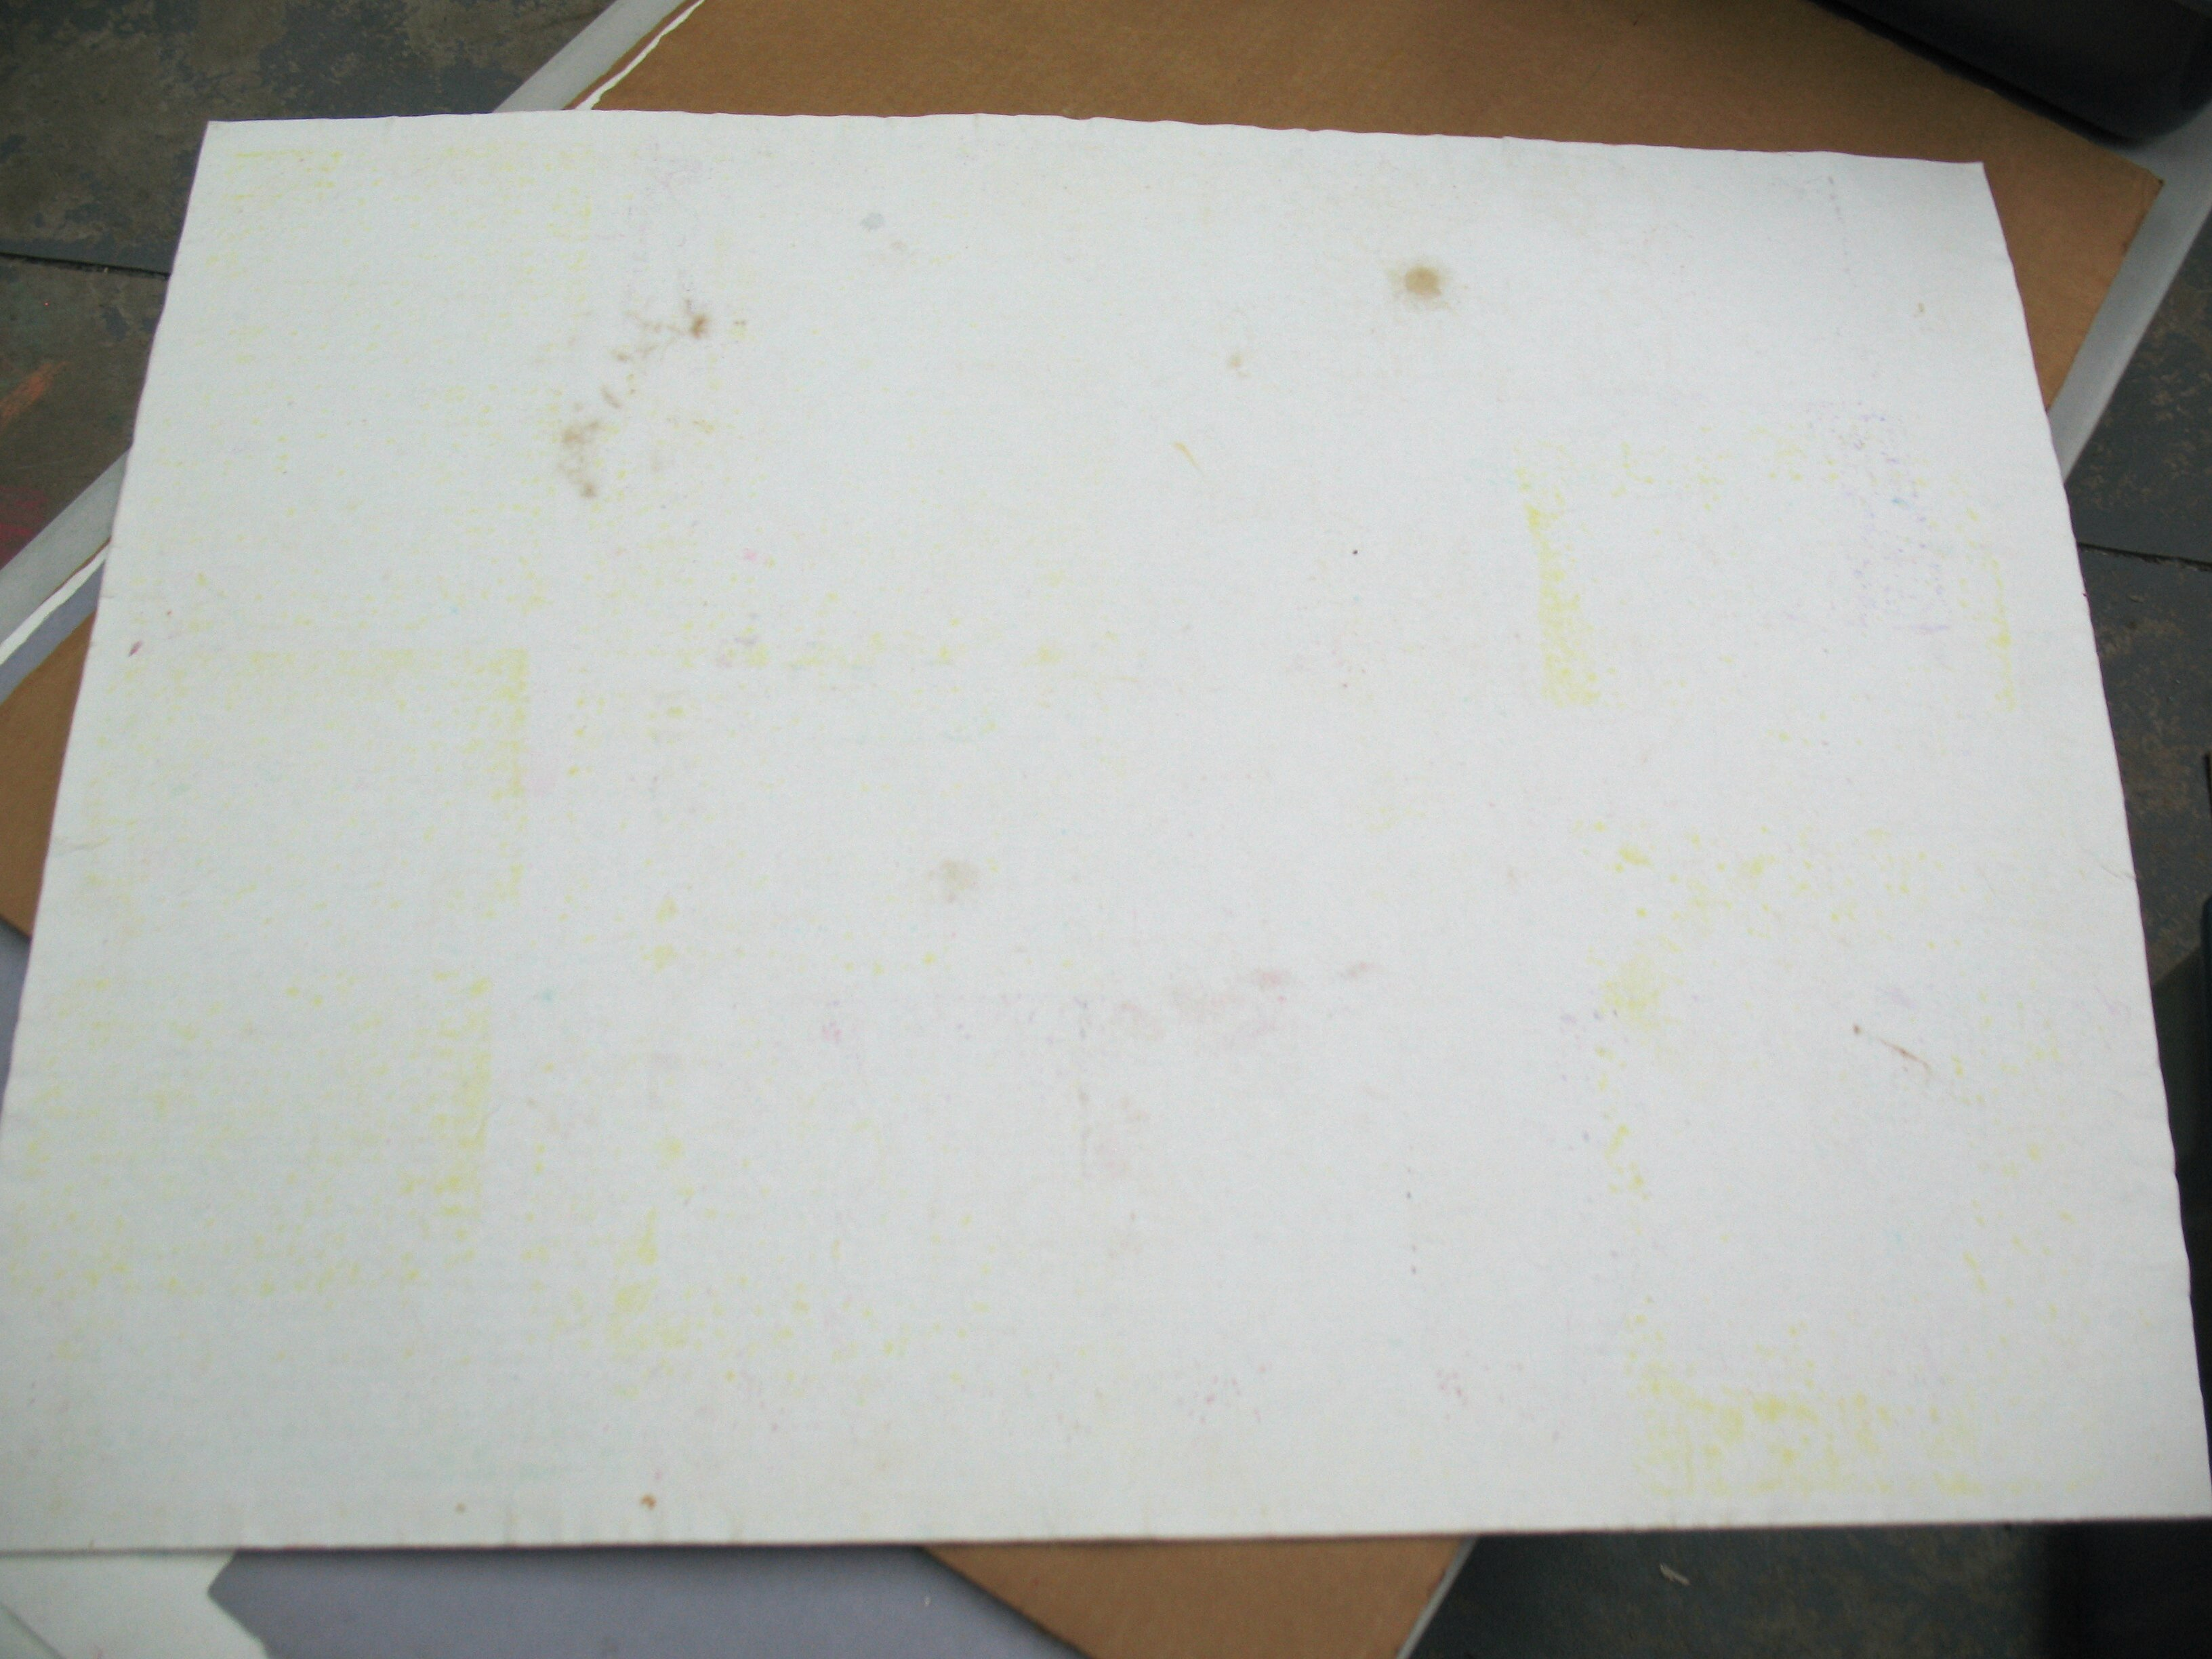 With repeated use, the blotters eventually become stained. These do not, however, transfer back to other paper, because the moisture is always moving from the paper to the blotters.